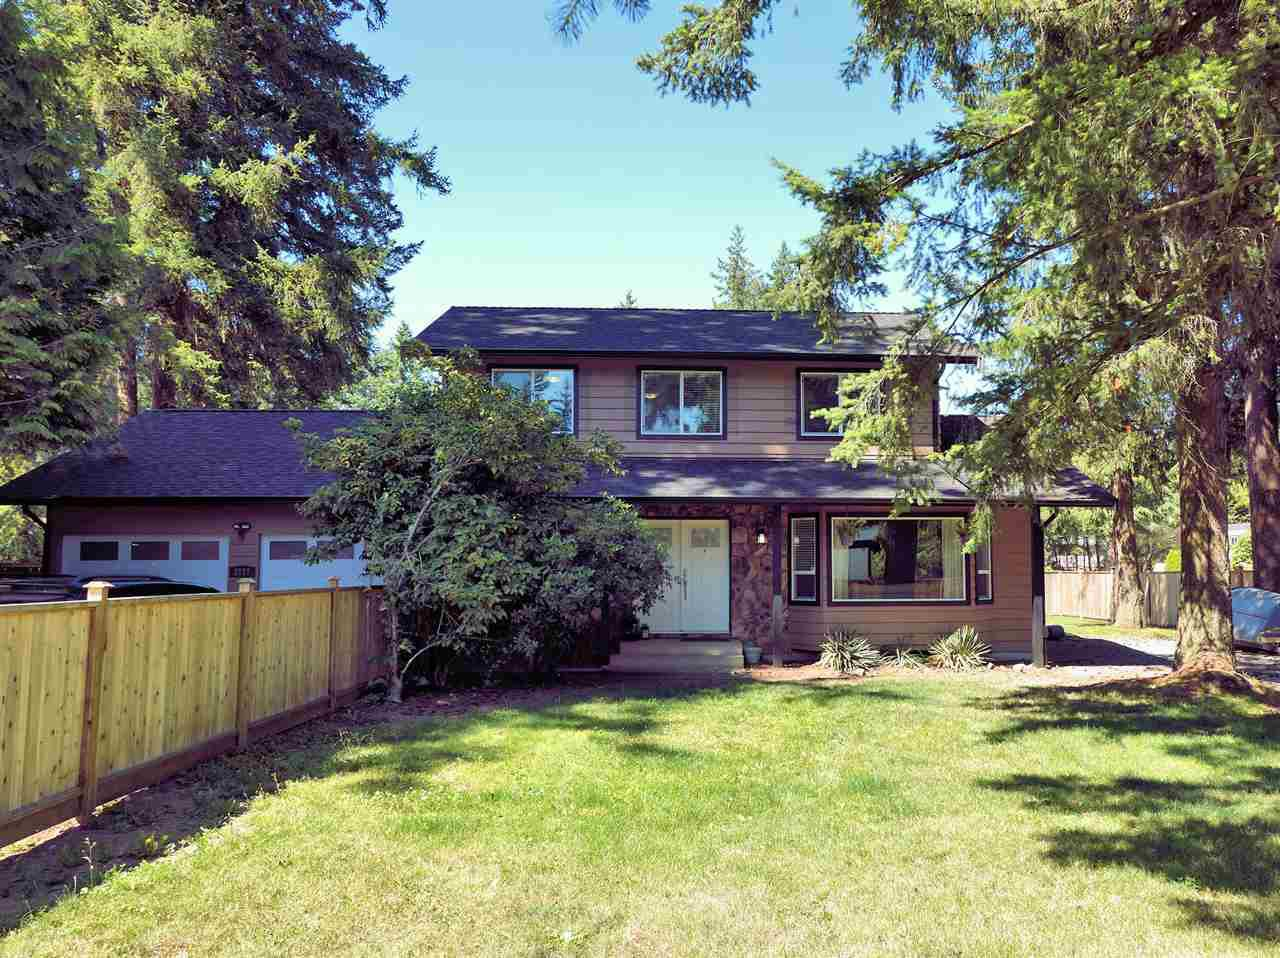 Main Photo: 3717 196A Street in Langley: Brookswood Langley House for sale : MLS®# R2392298